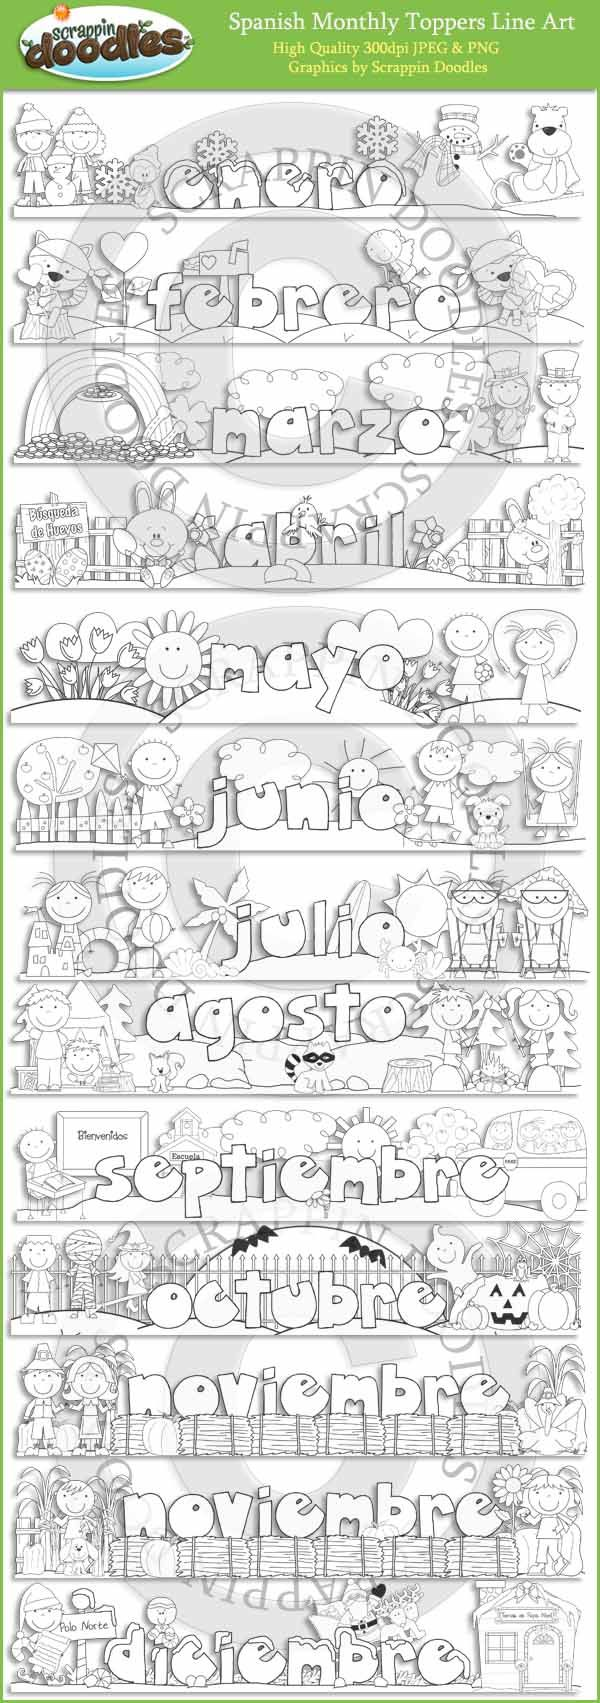 Spanish Monthly Toppers Line Art Download - $3.50 : Scrappin Doodles, Creative Clip Art, Websets & More